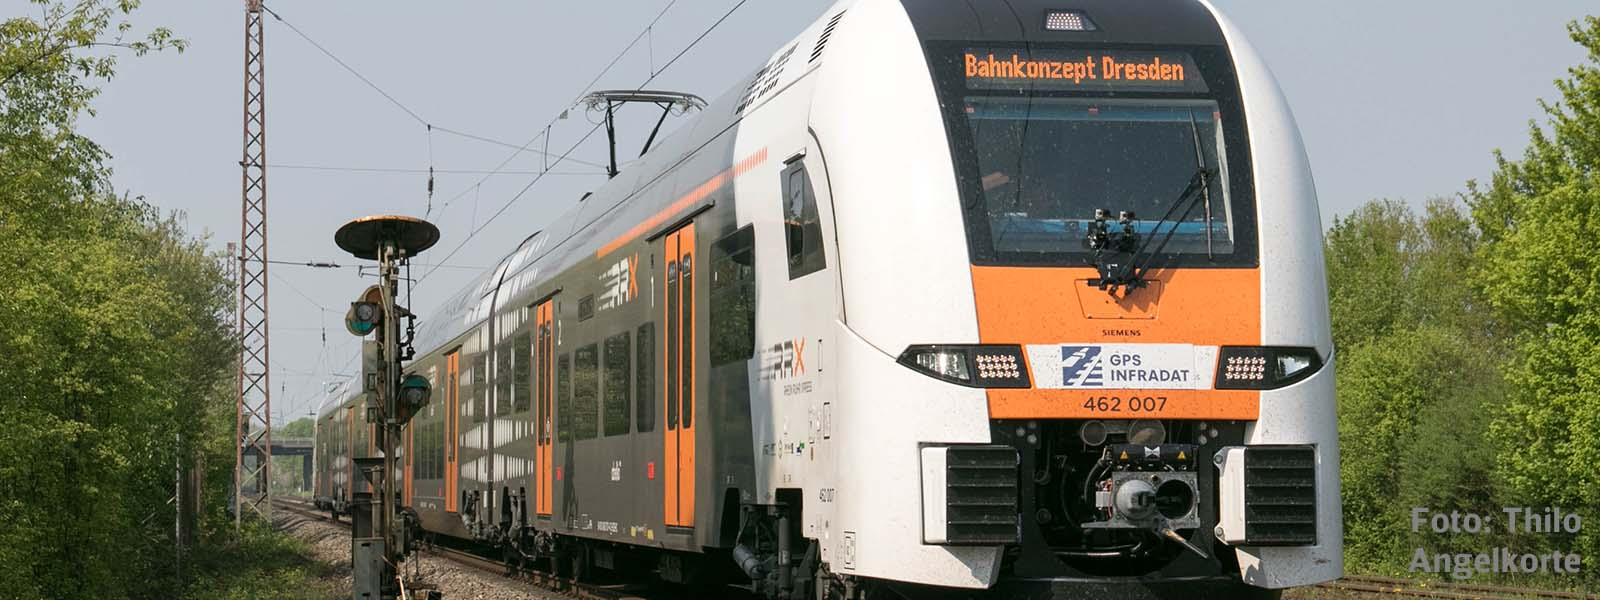 Bahnkonzept's measurement train run with Siemens Desiro HC